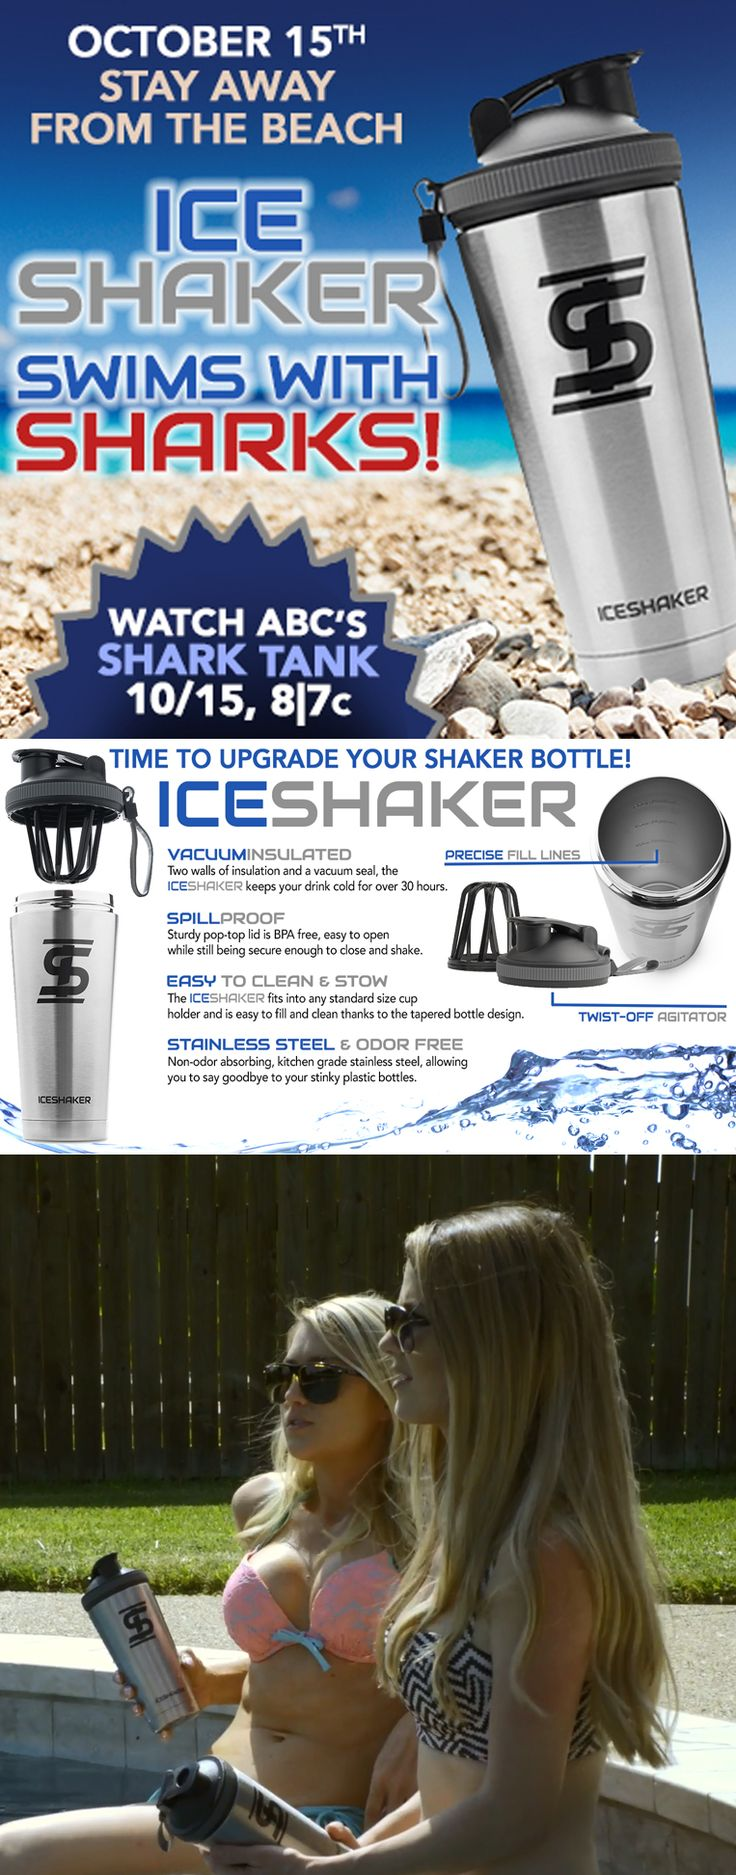 Ice Shaker is taking on the Shark Tank! Watch on ABC on October 15th as the best shaker bottle on the market tries to land a deal.  Ice Shaker CEO Chris Gronkowski and his brothers Gordie, Dan, Rob and Glenn Gronkowski all team up to show why Ice Shaker's kitchen grade stainless steel bottle and shaker cup is worth an investment.